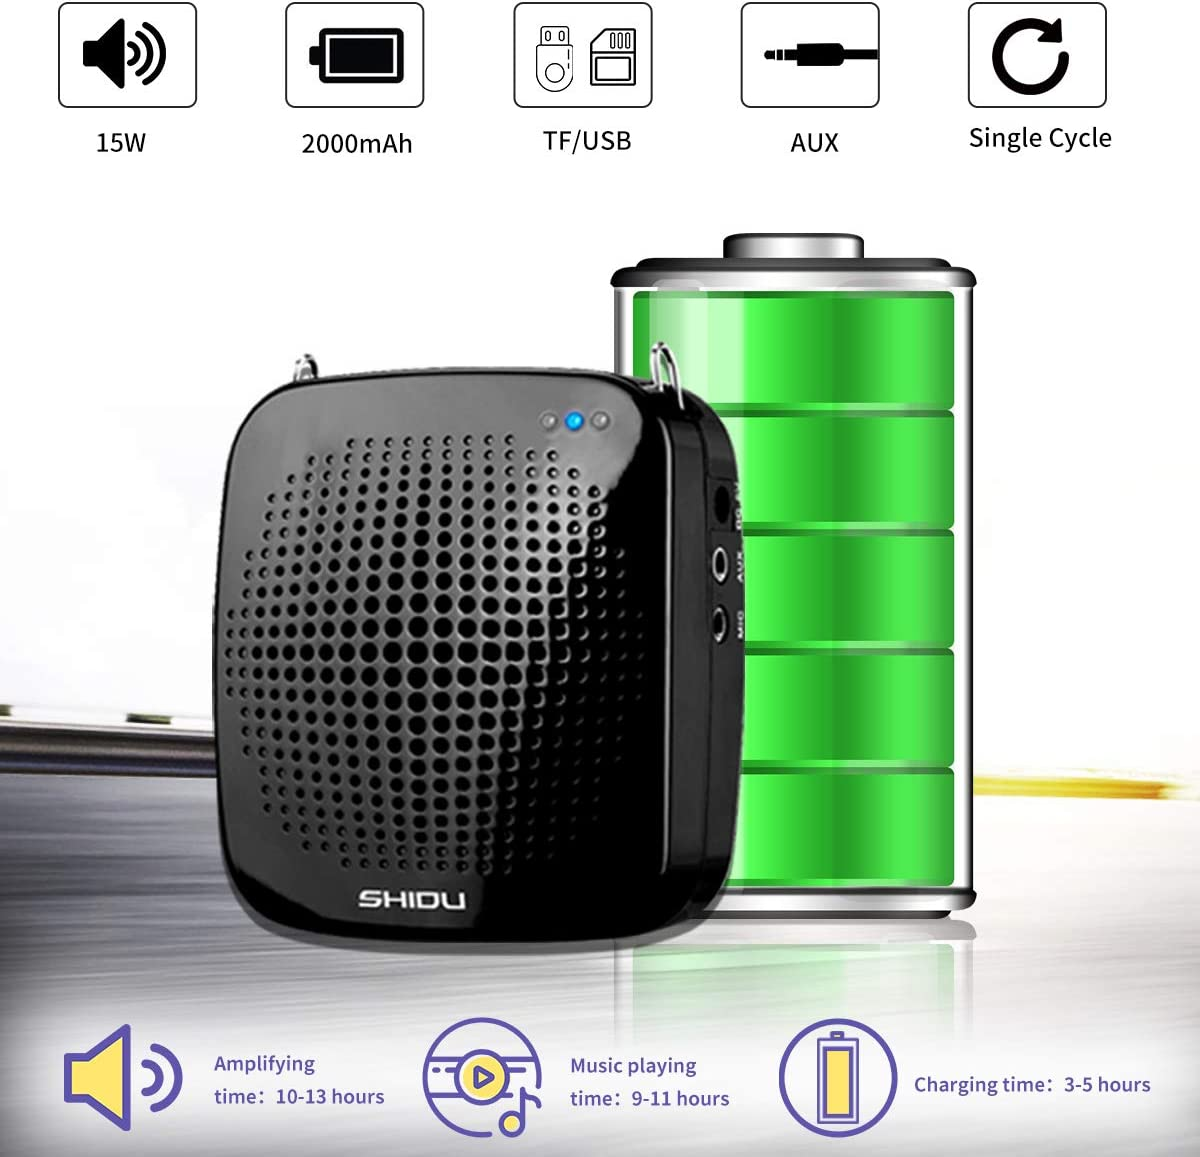 Voice Amplifier with Microphone Headset 2000 mAh Rechargeable 15W Portable Amplifier Pa Amp Speaker for Teachers Classroom,Meetings and more